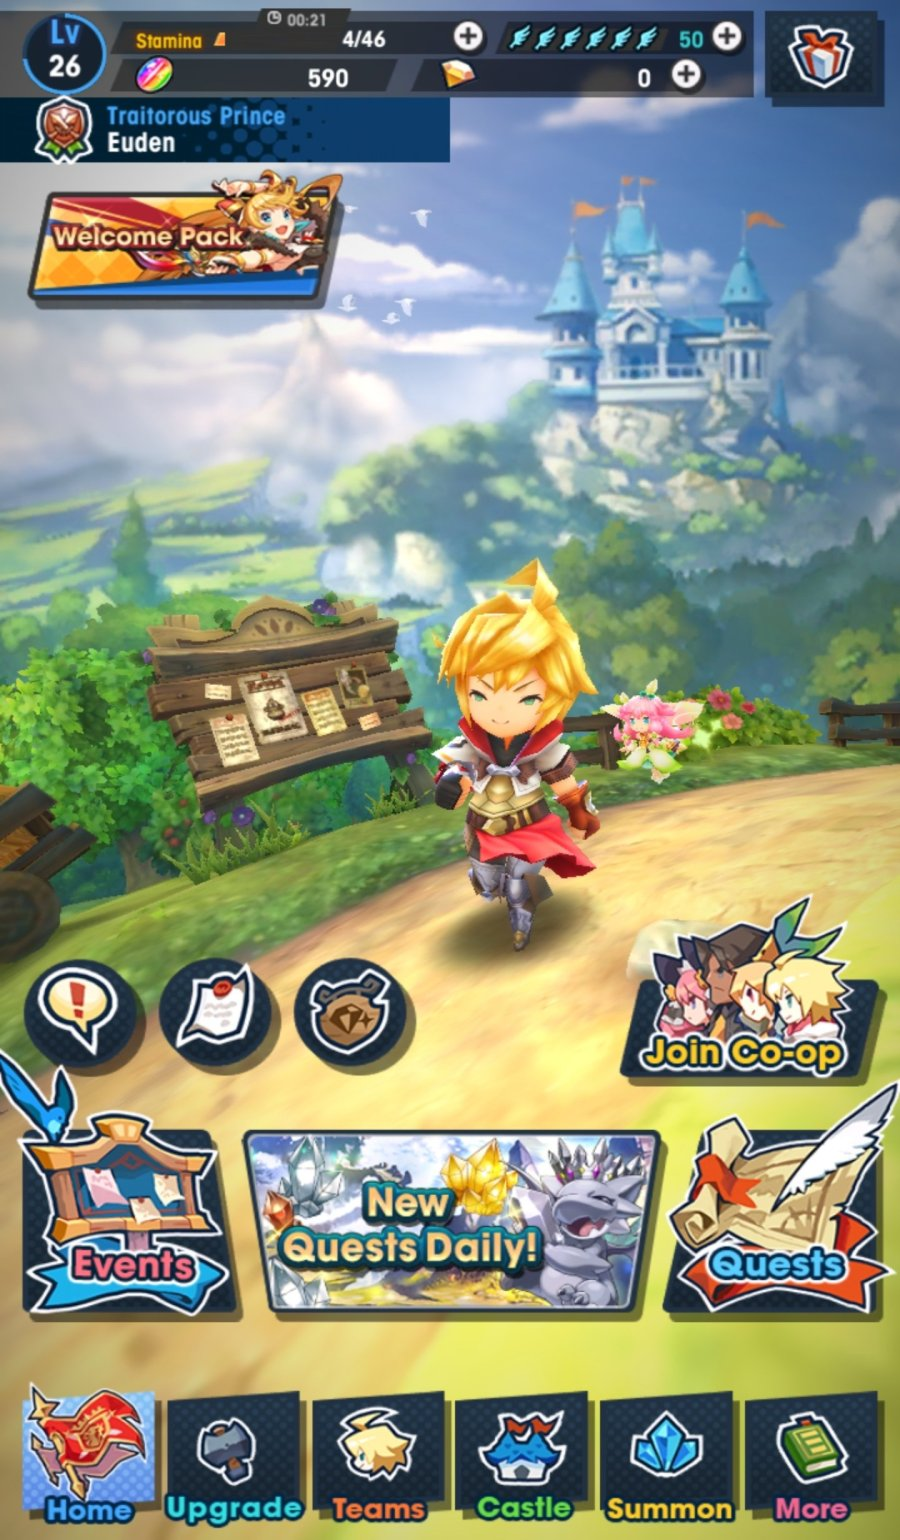 screenshot_20181001-211540_dragalia791601312460170303.jpg